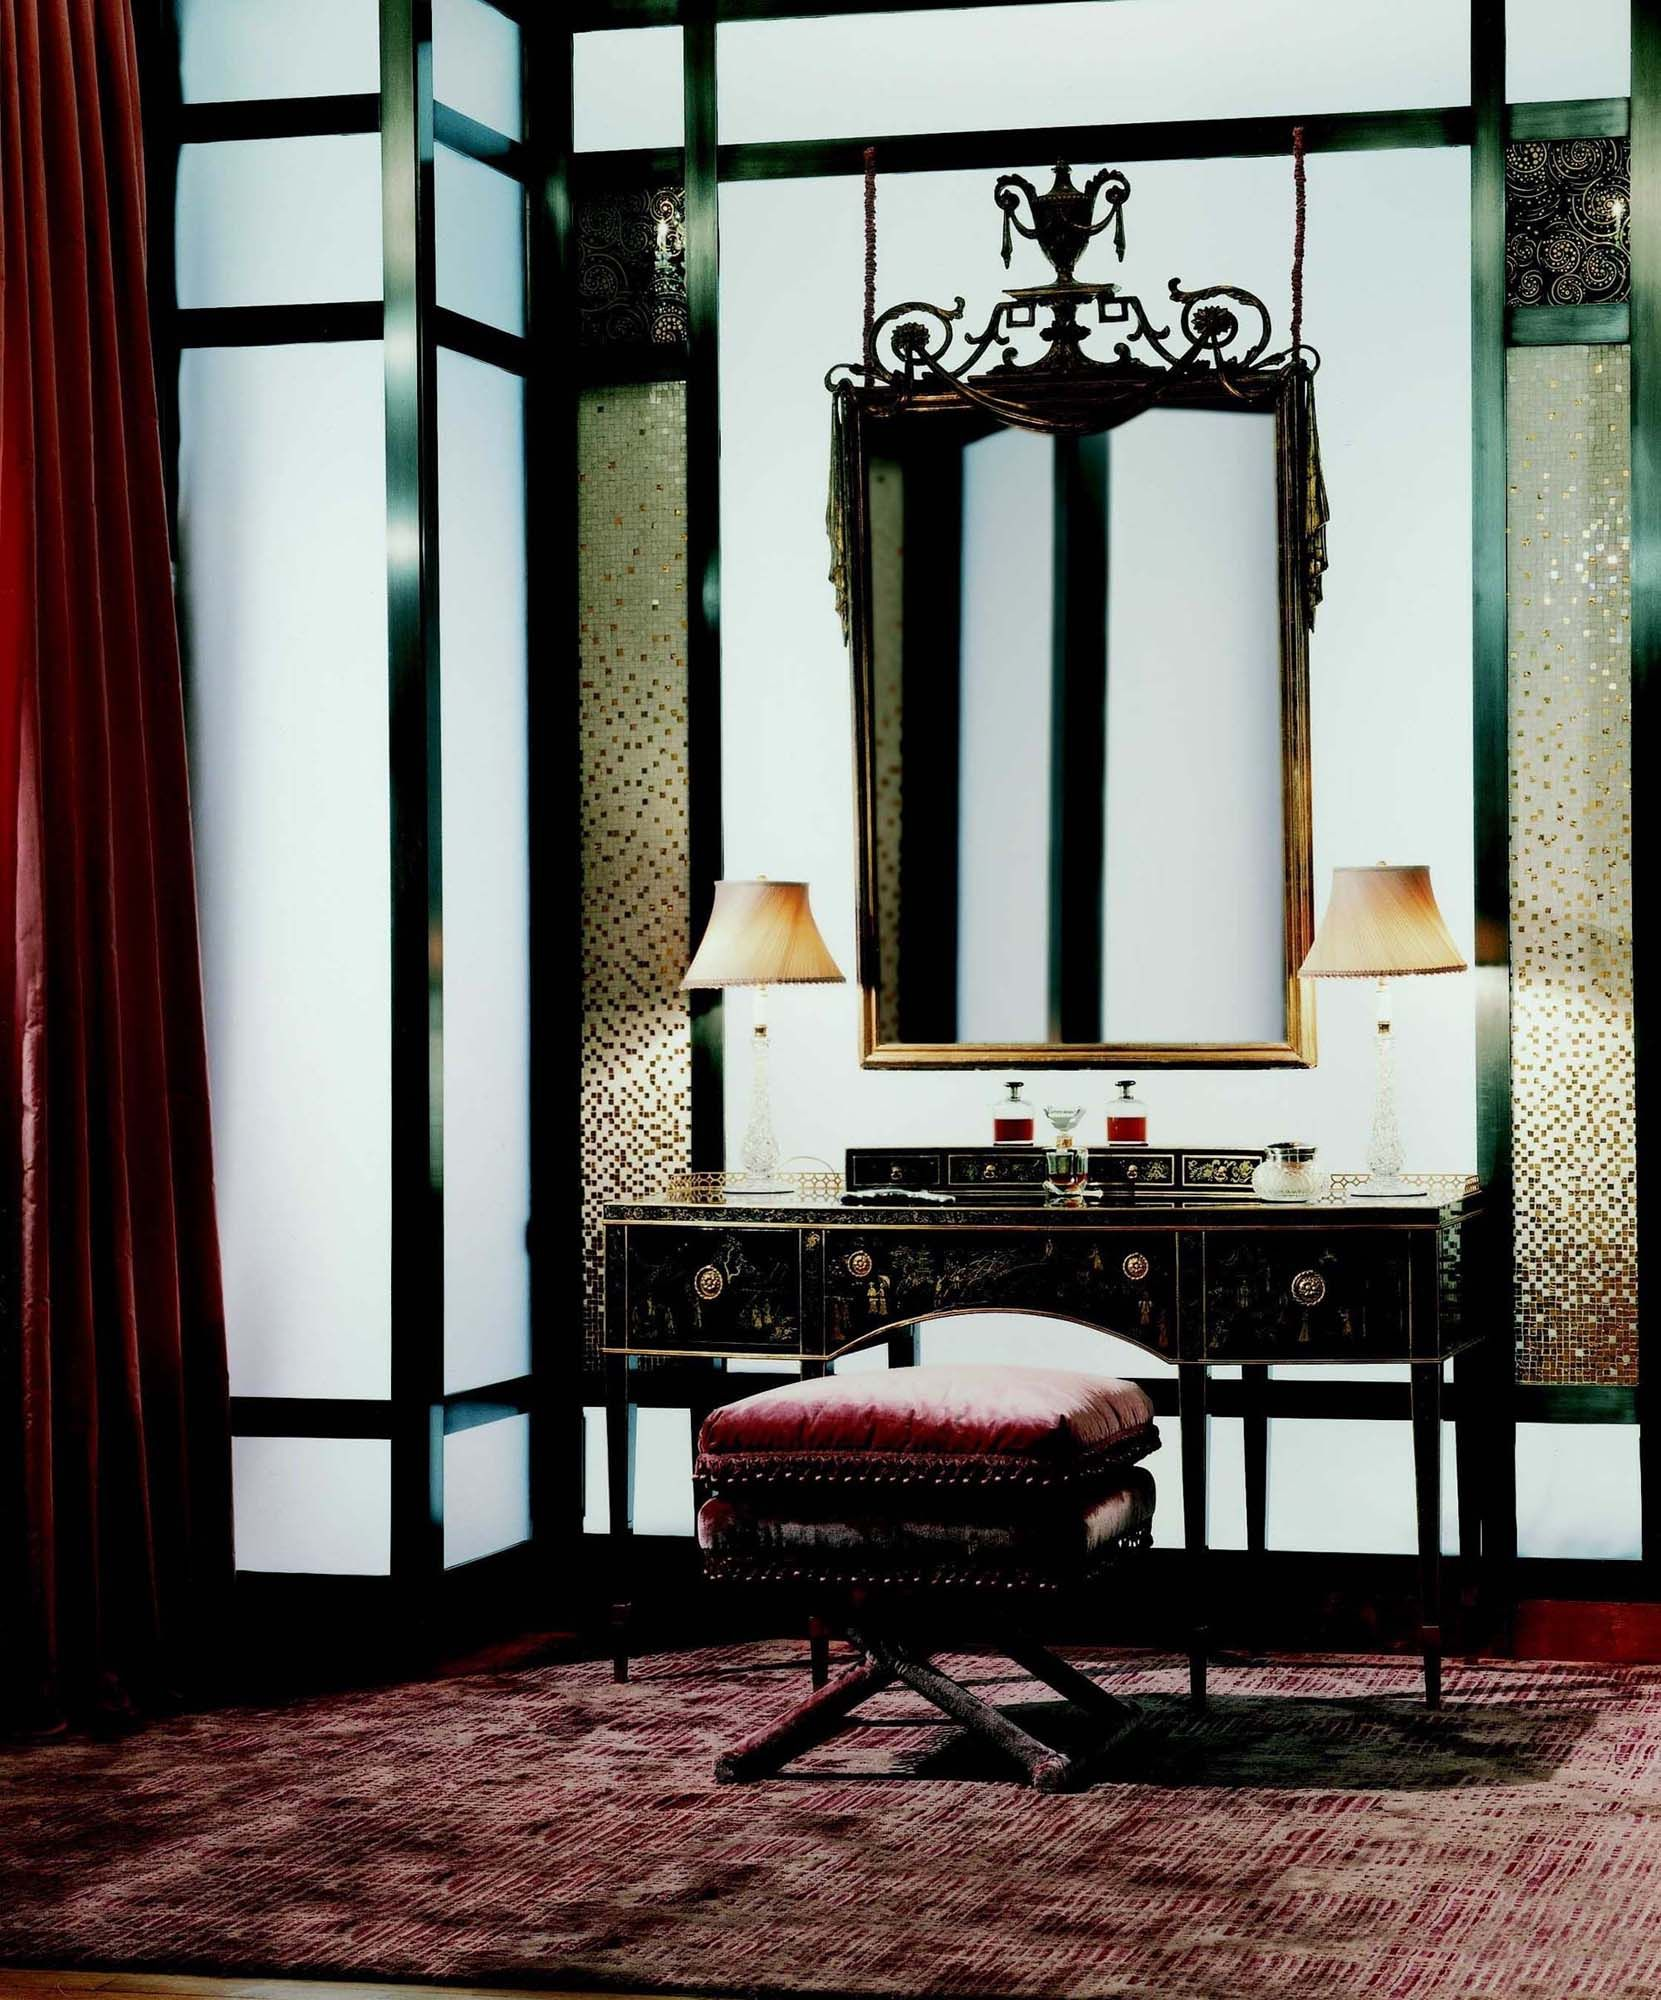 A powder room with sand-blasted glass, patinated steel, micro-mosiacs and eglomise.